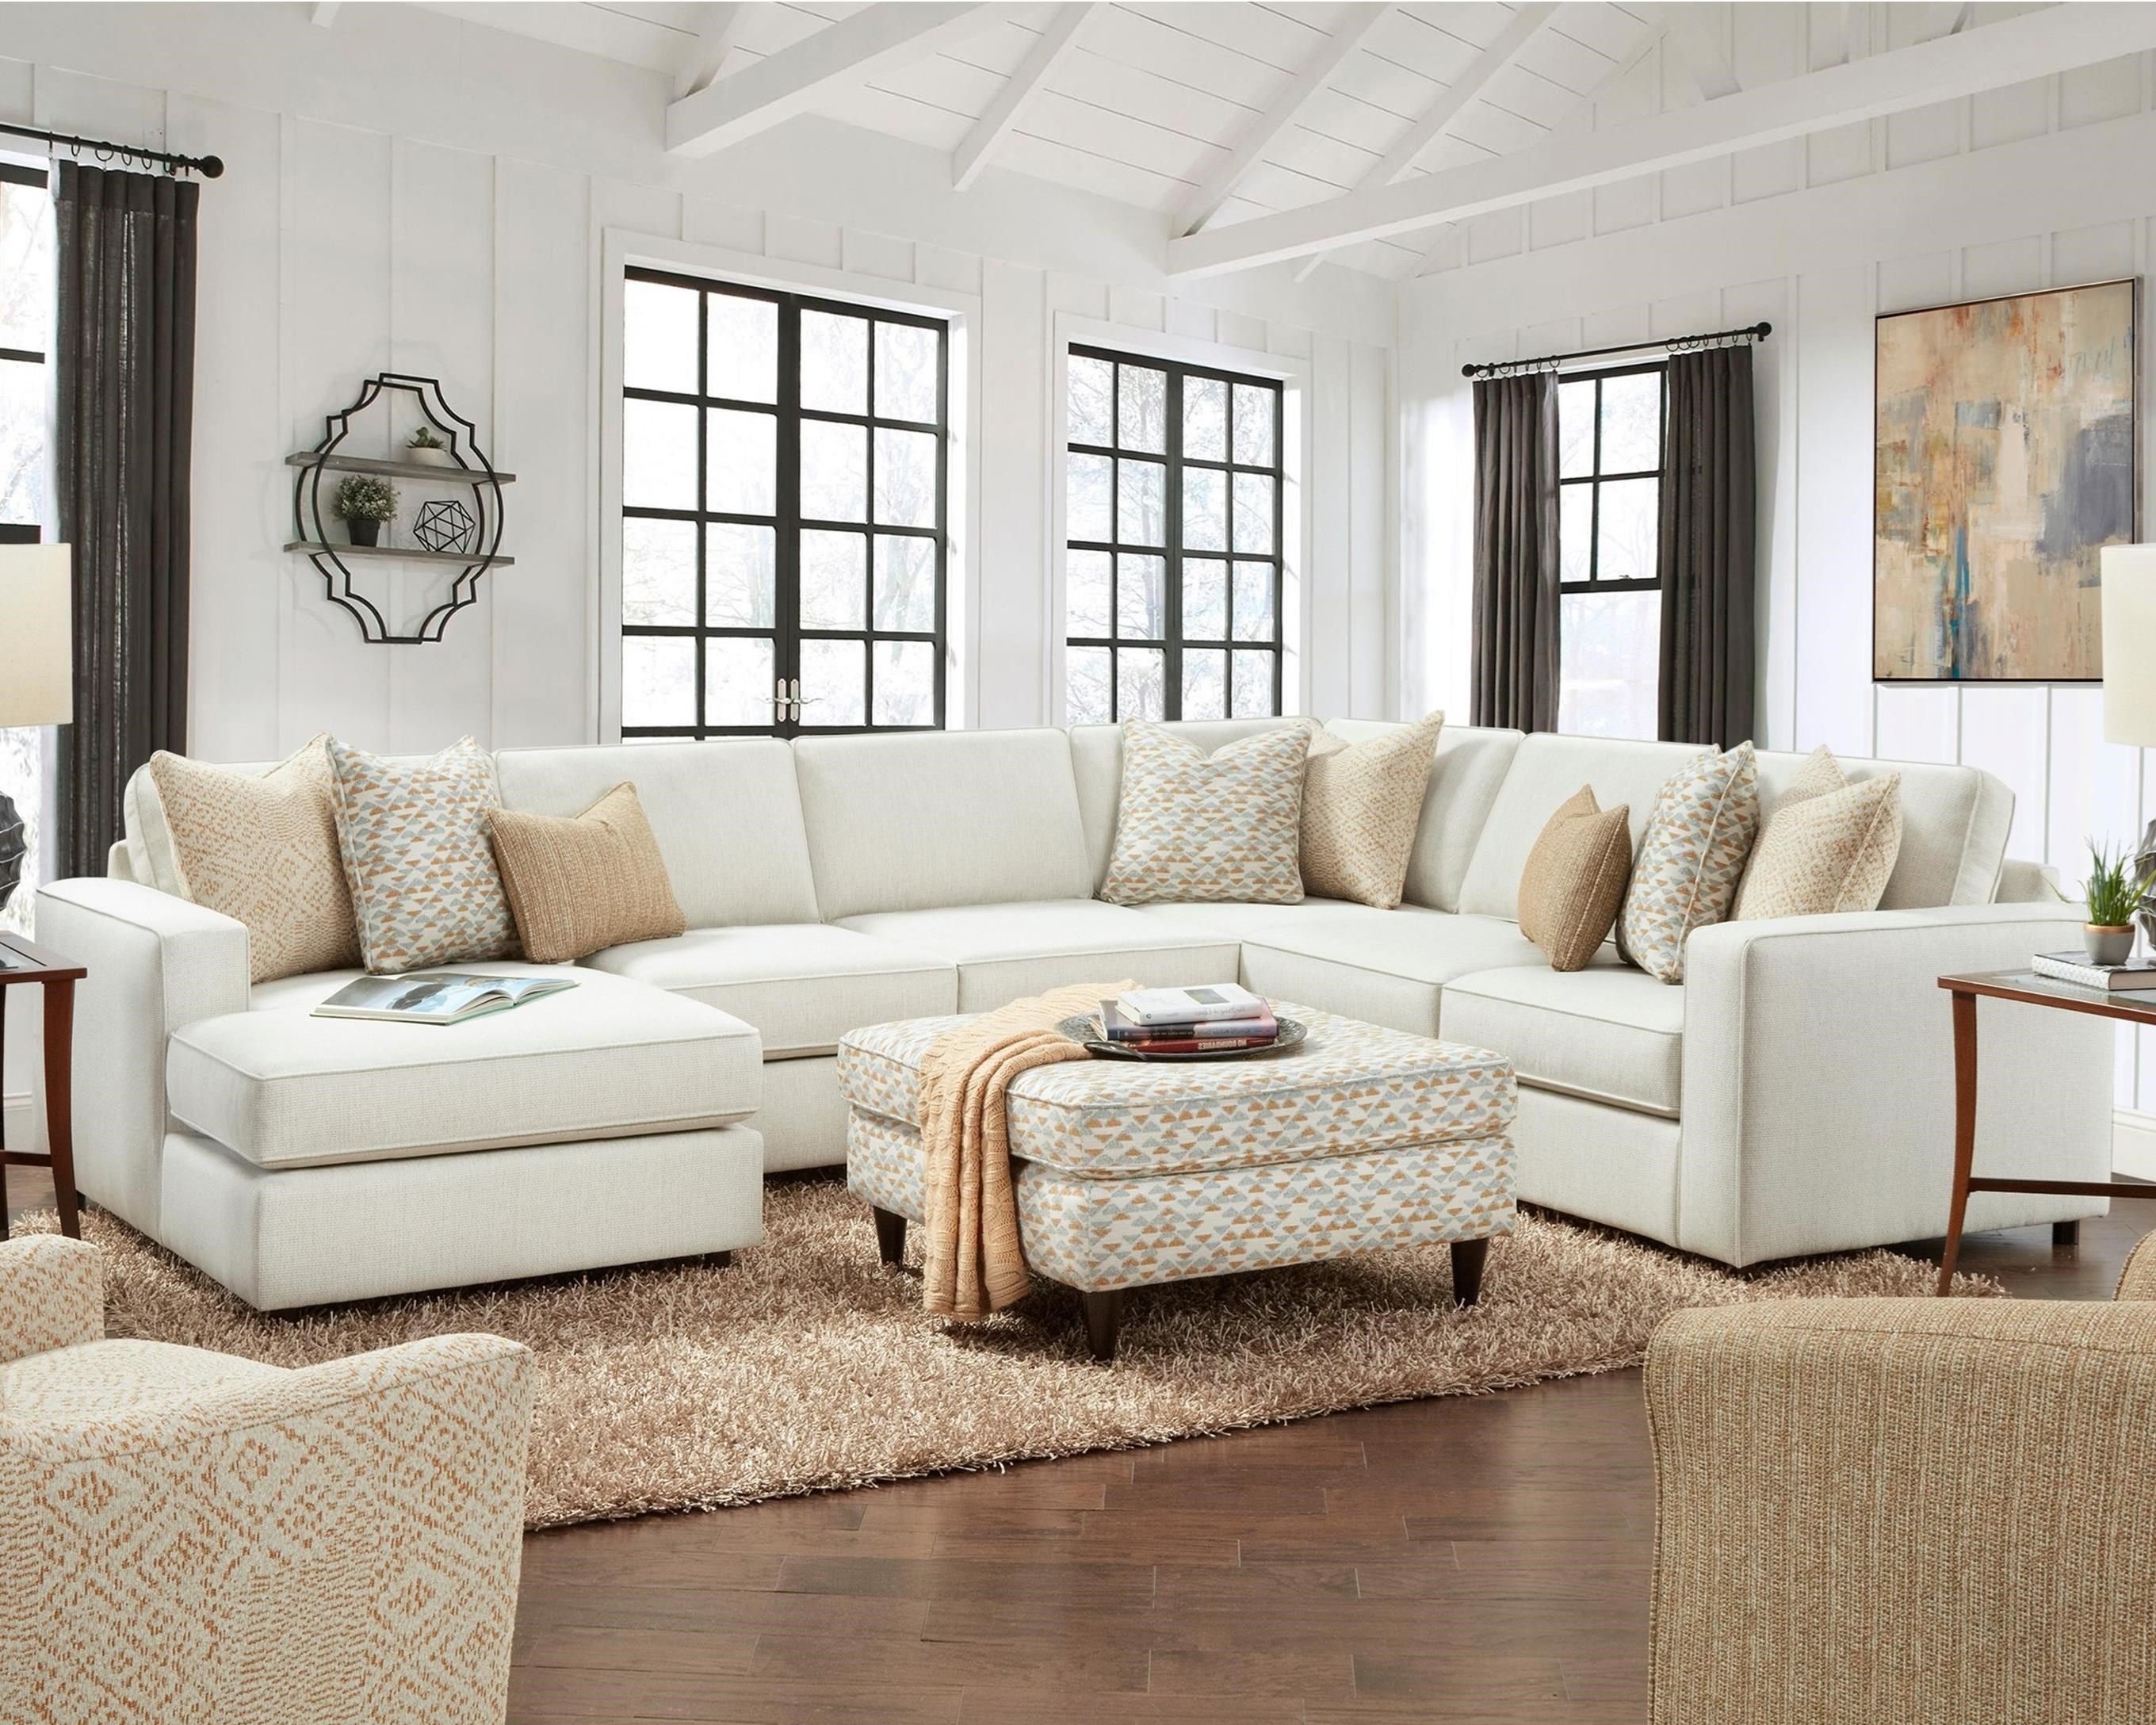 2061 4-Piece Sectional with Chaise by Fusion Furniture at Dean Bosler's